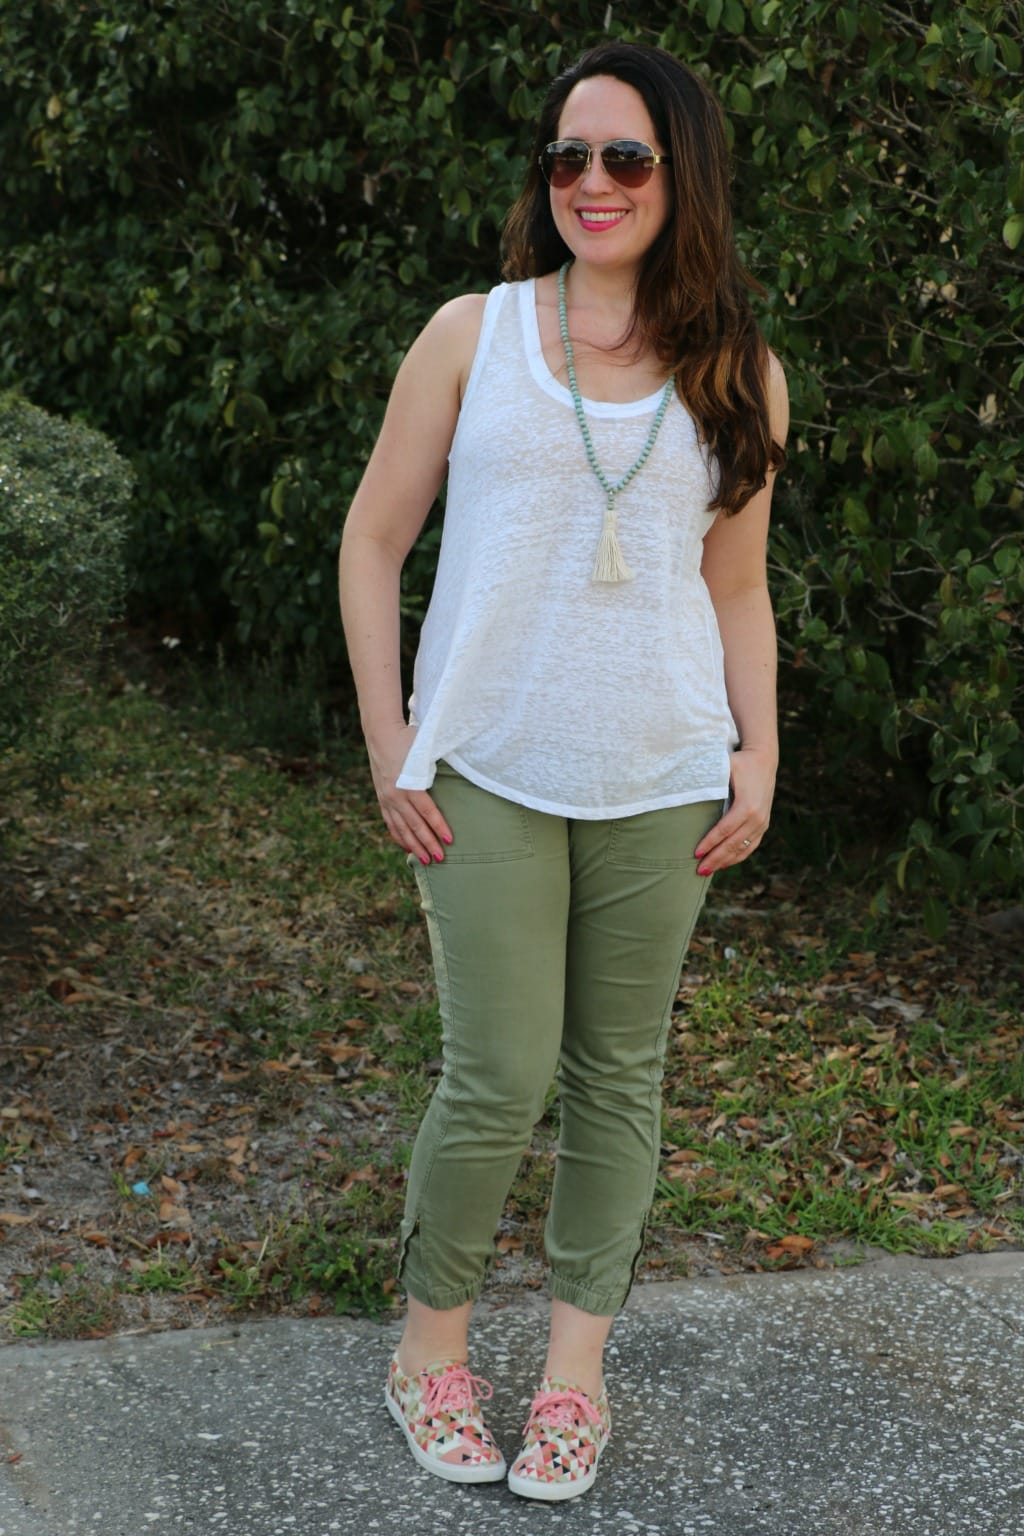 spring sneakers outfit